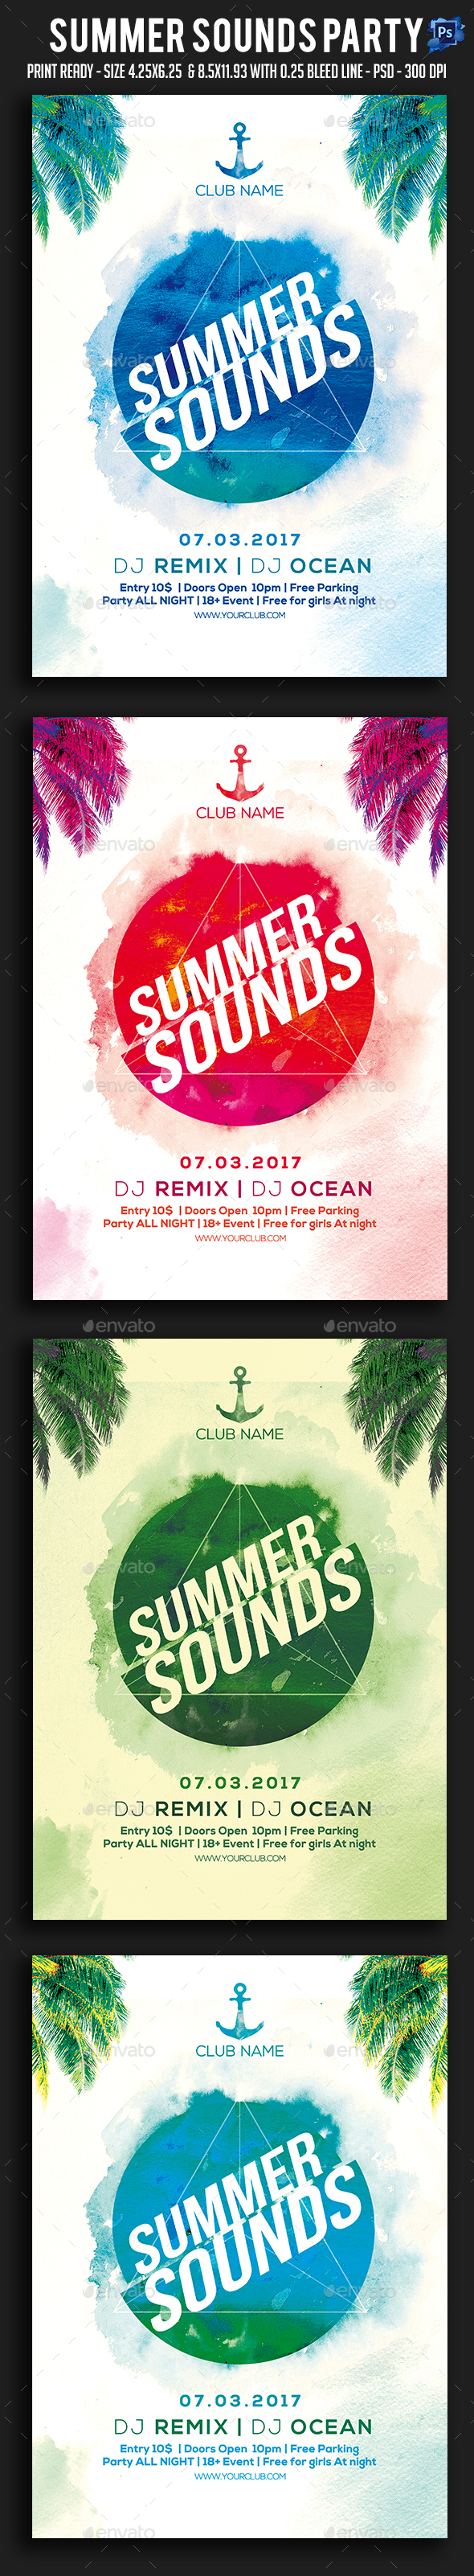 Summer Sounds Party Flyer - Clubs & Parties Events